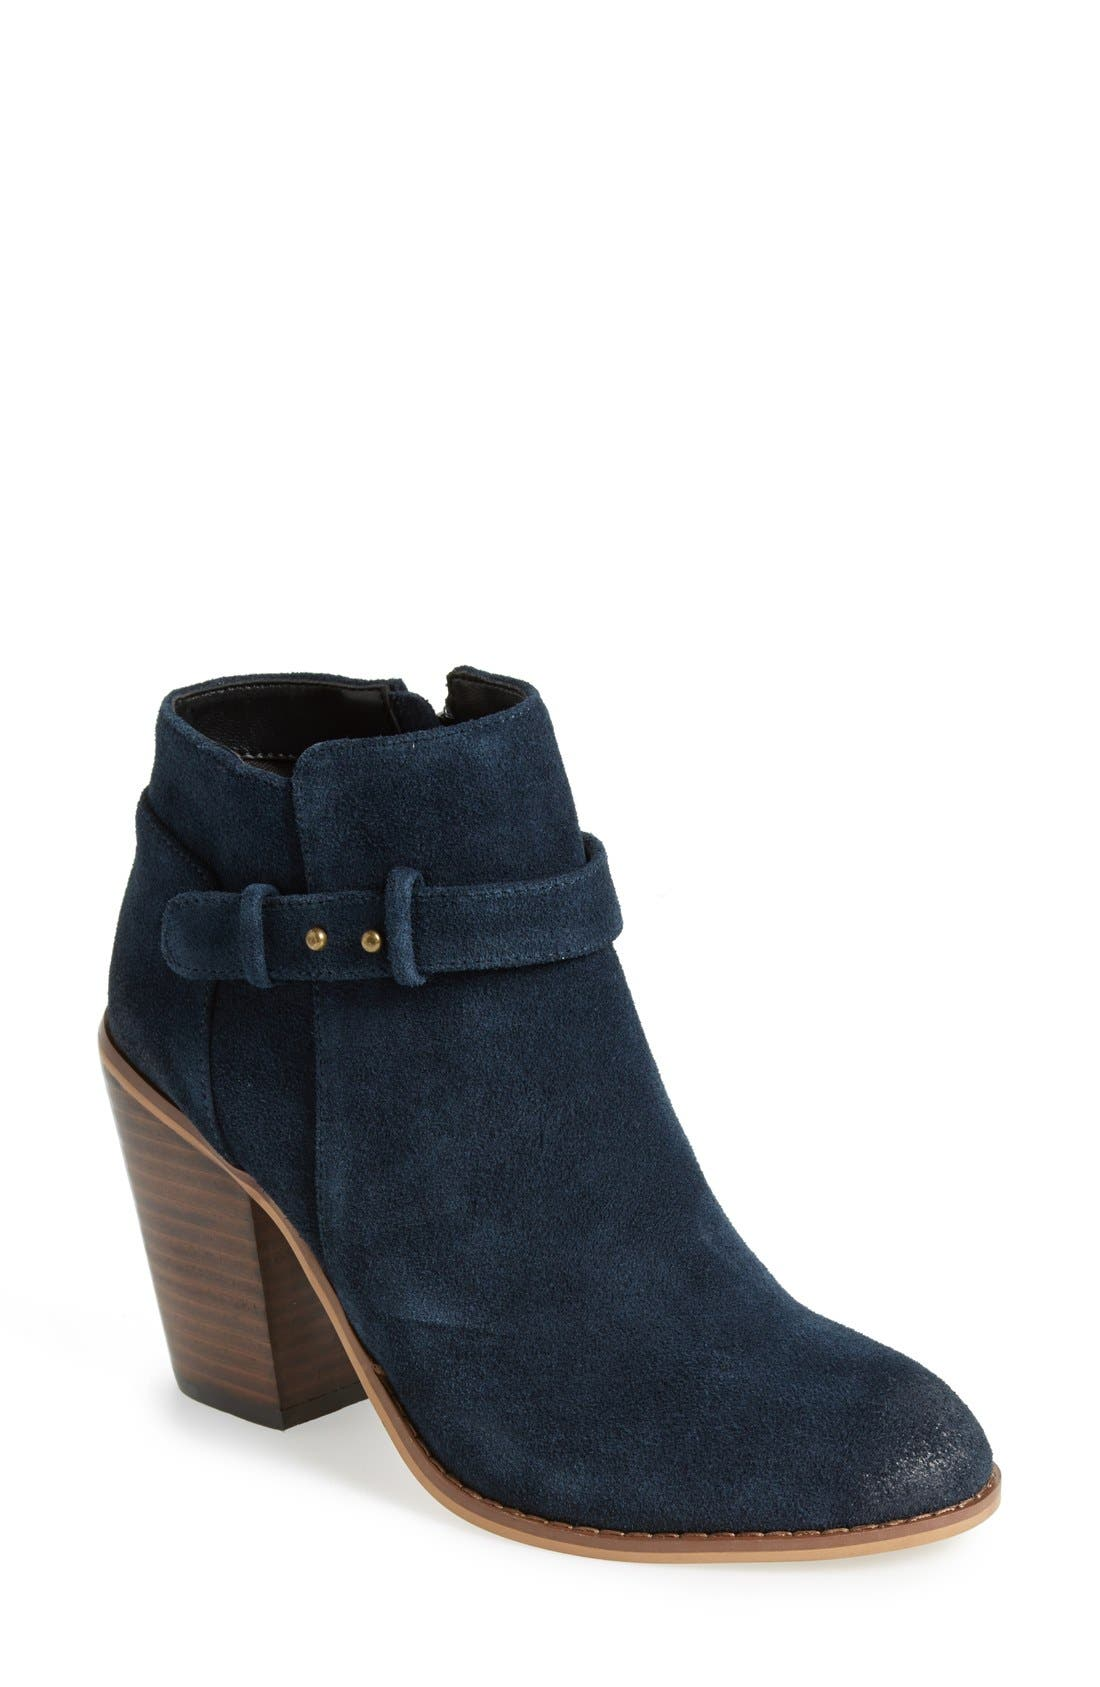 'Lyriq' Bootie,                         Main,                         color, INK NAVY SUEDE